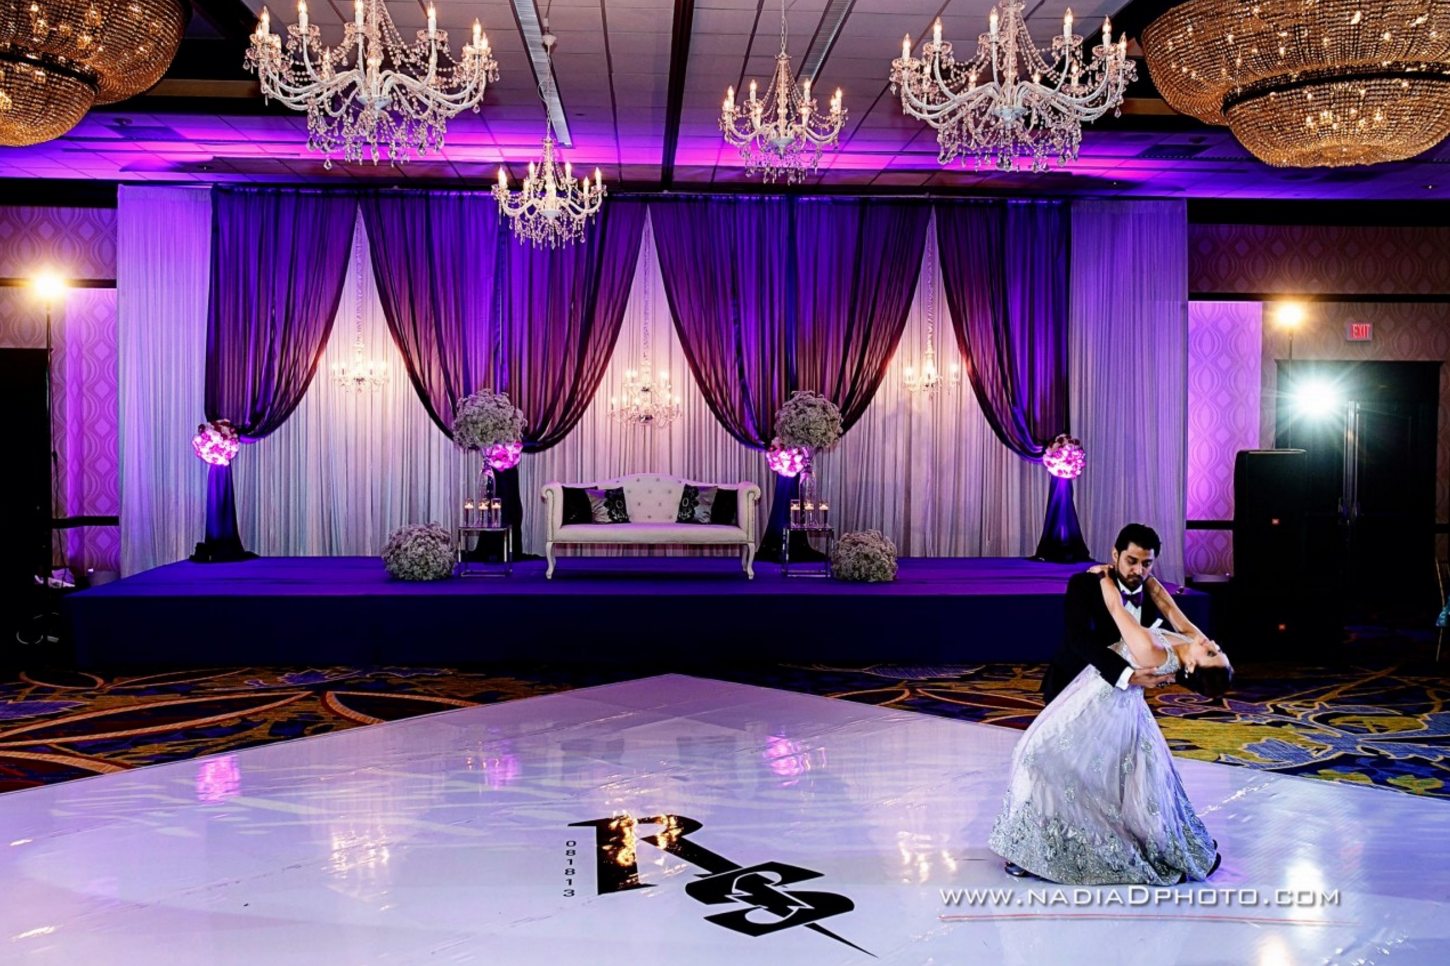 Wedding reception stage decoration images  Custom dance floor wrap paired with LED lighting at a wedding event